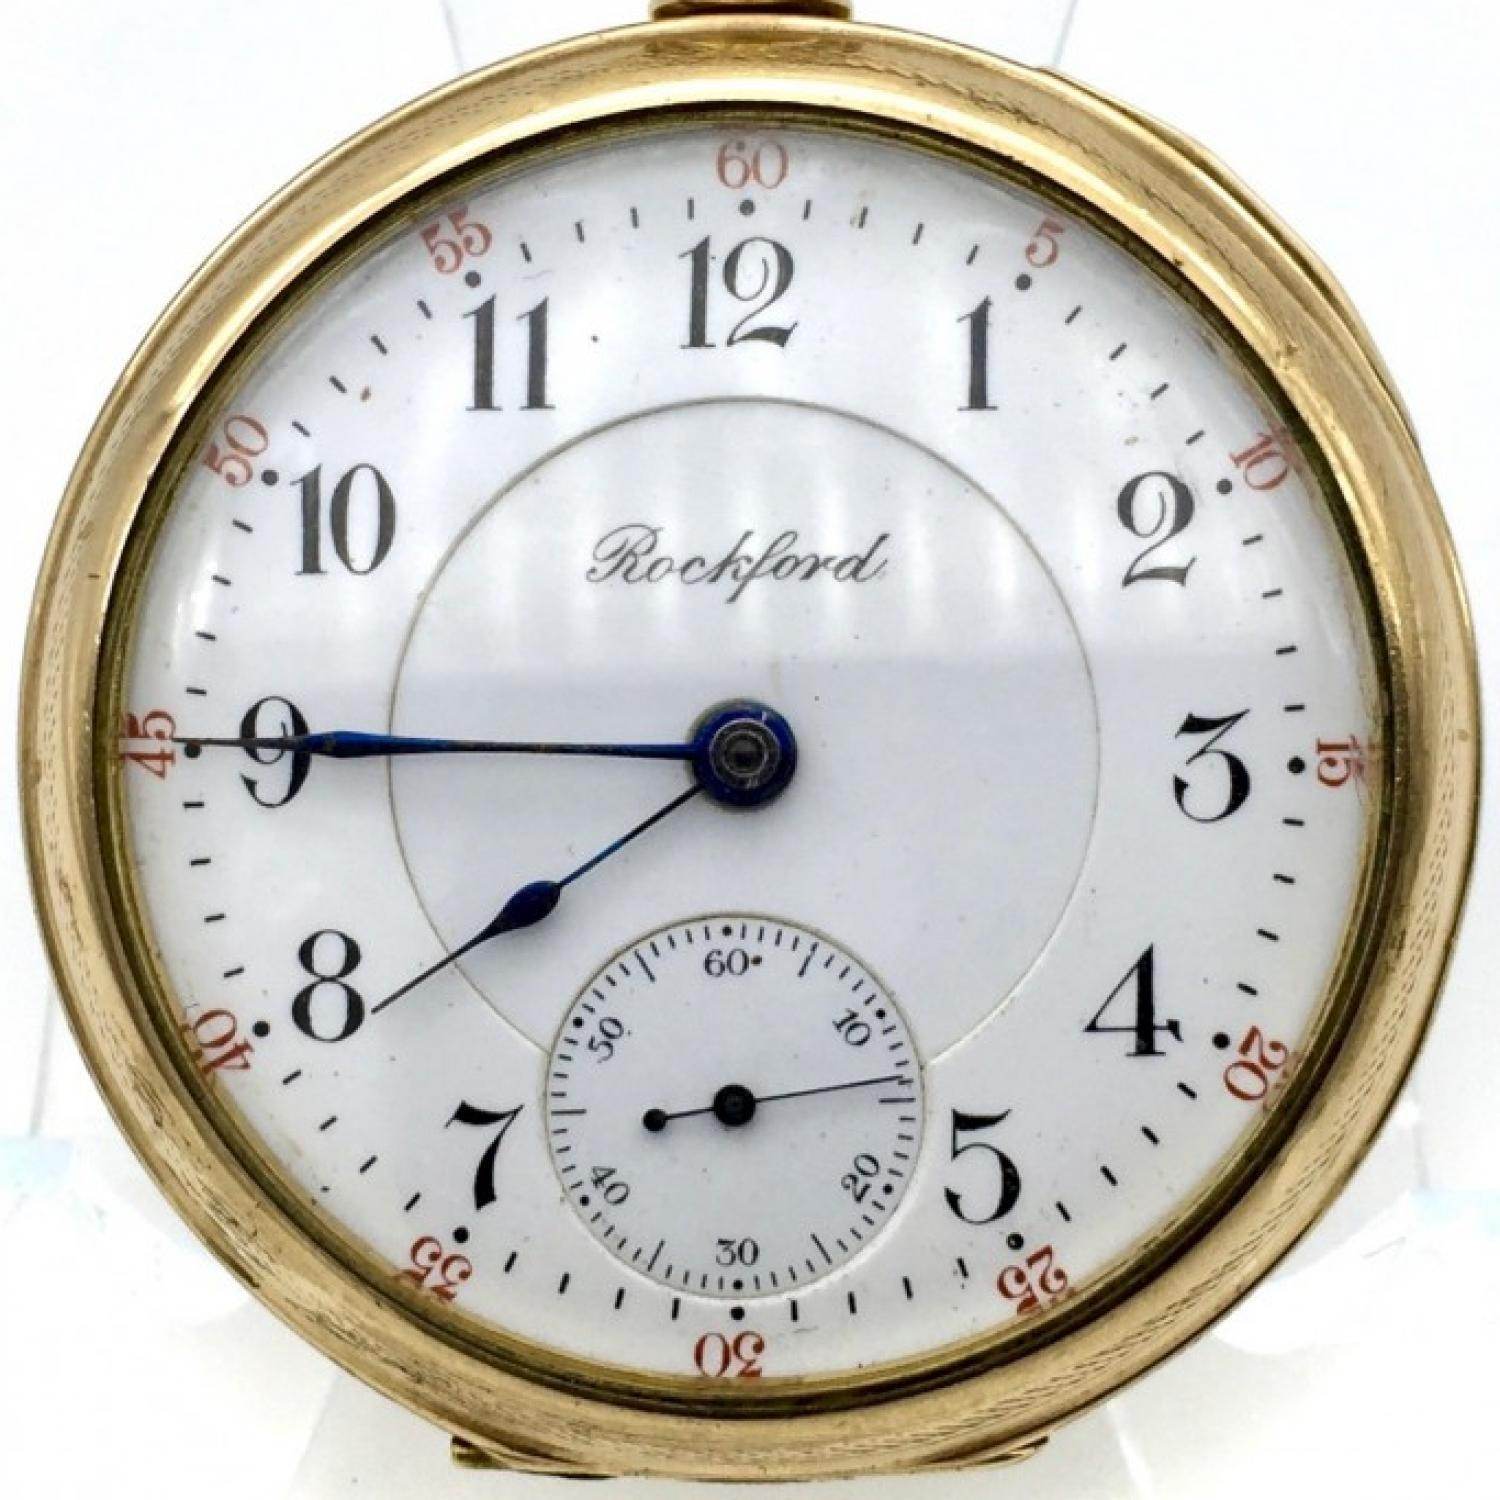 Image of Rockford 945 #873430 Dial